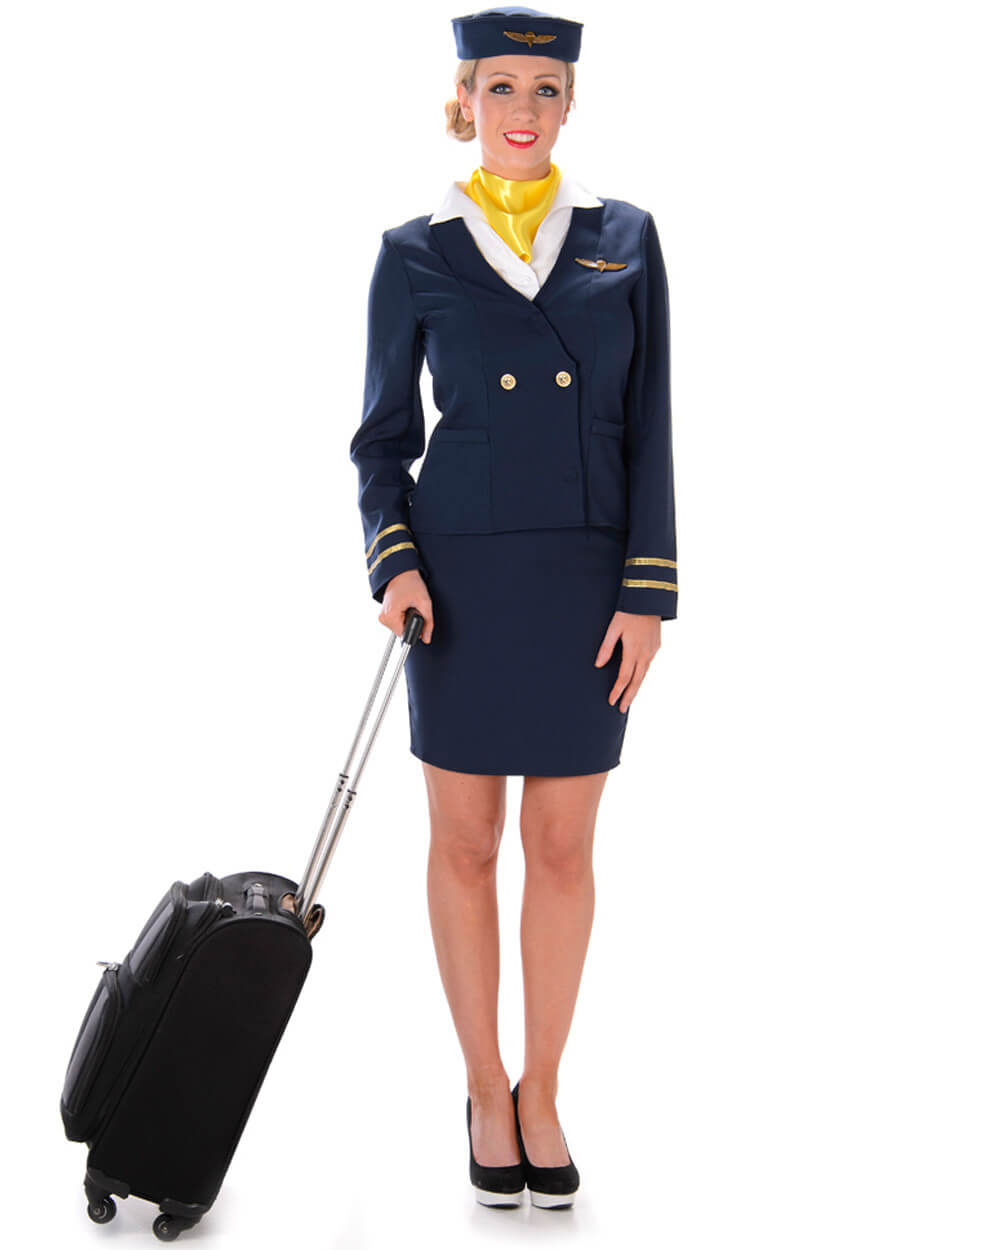 A friendly flight attendant costume for cheap